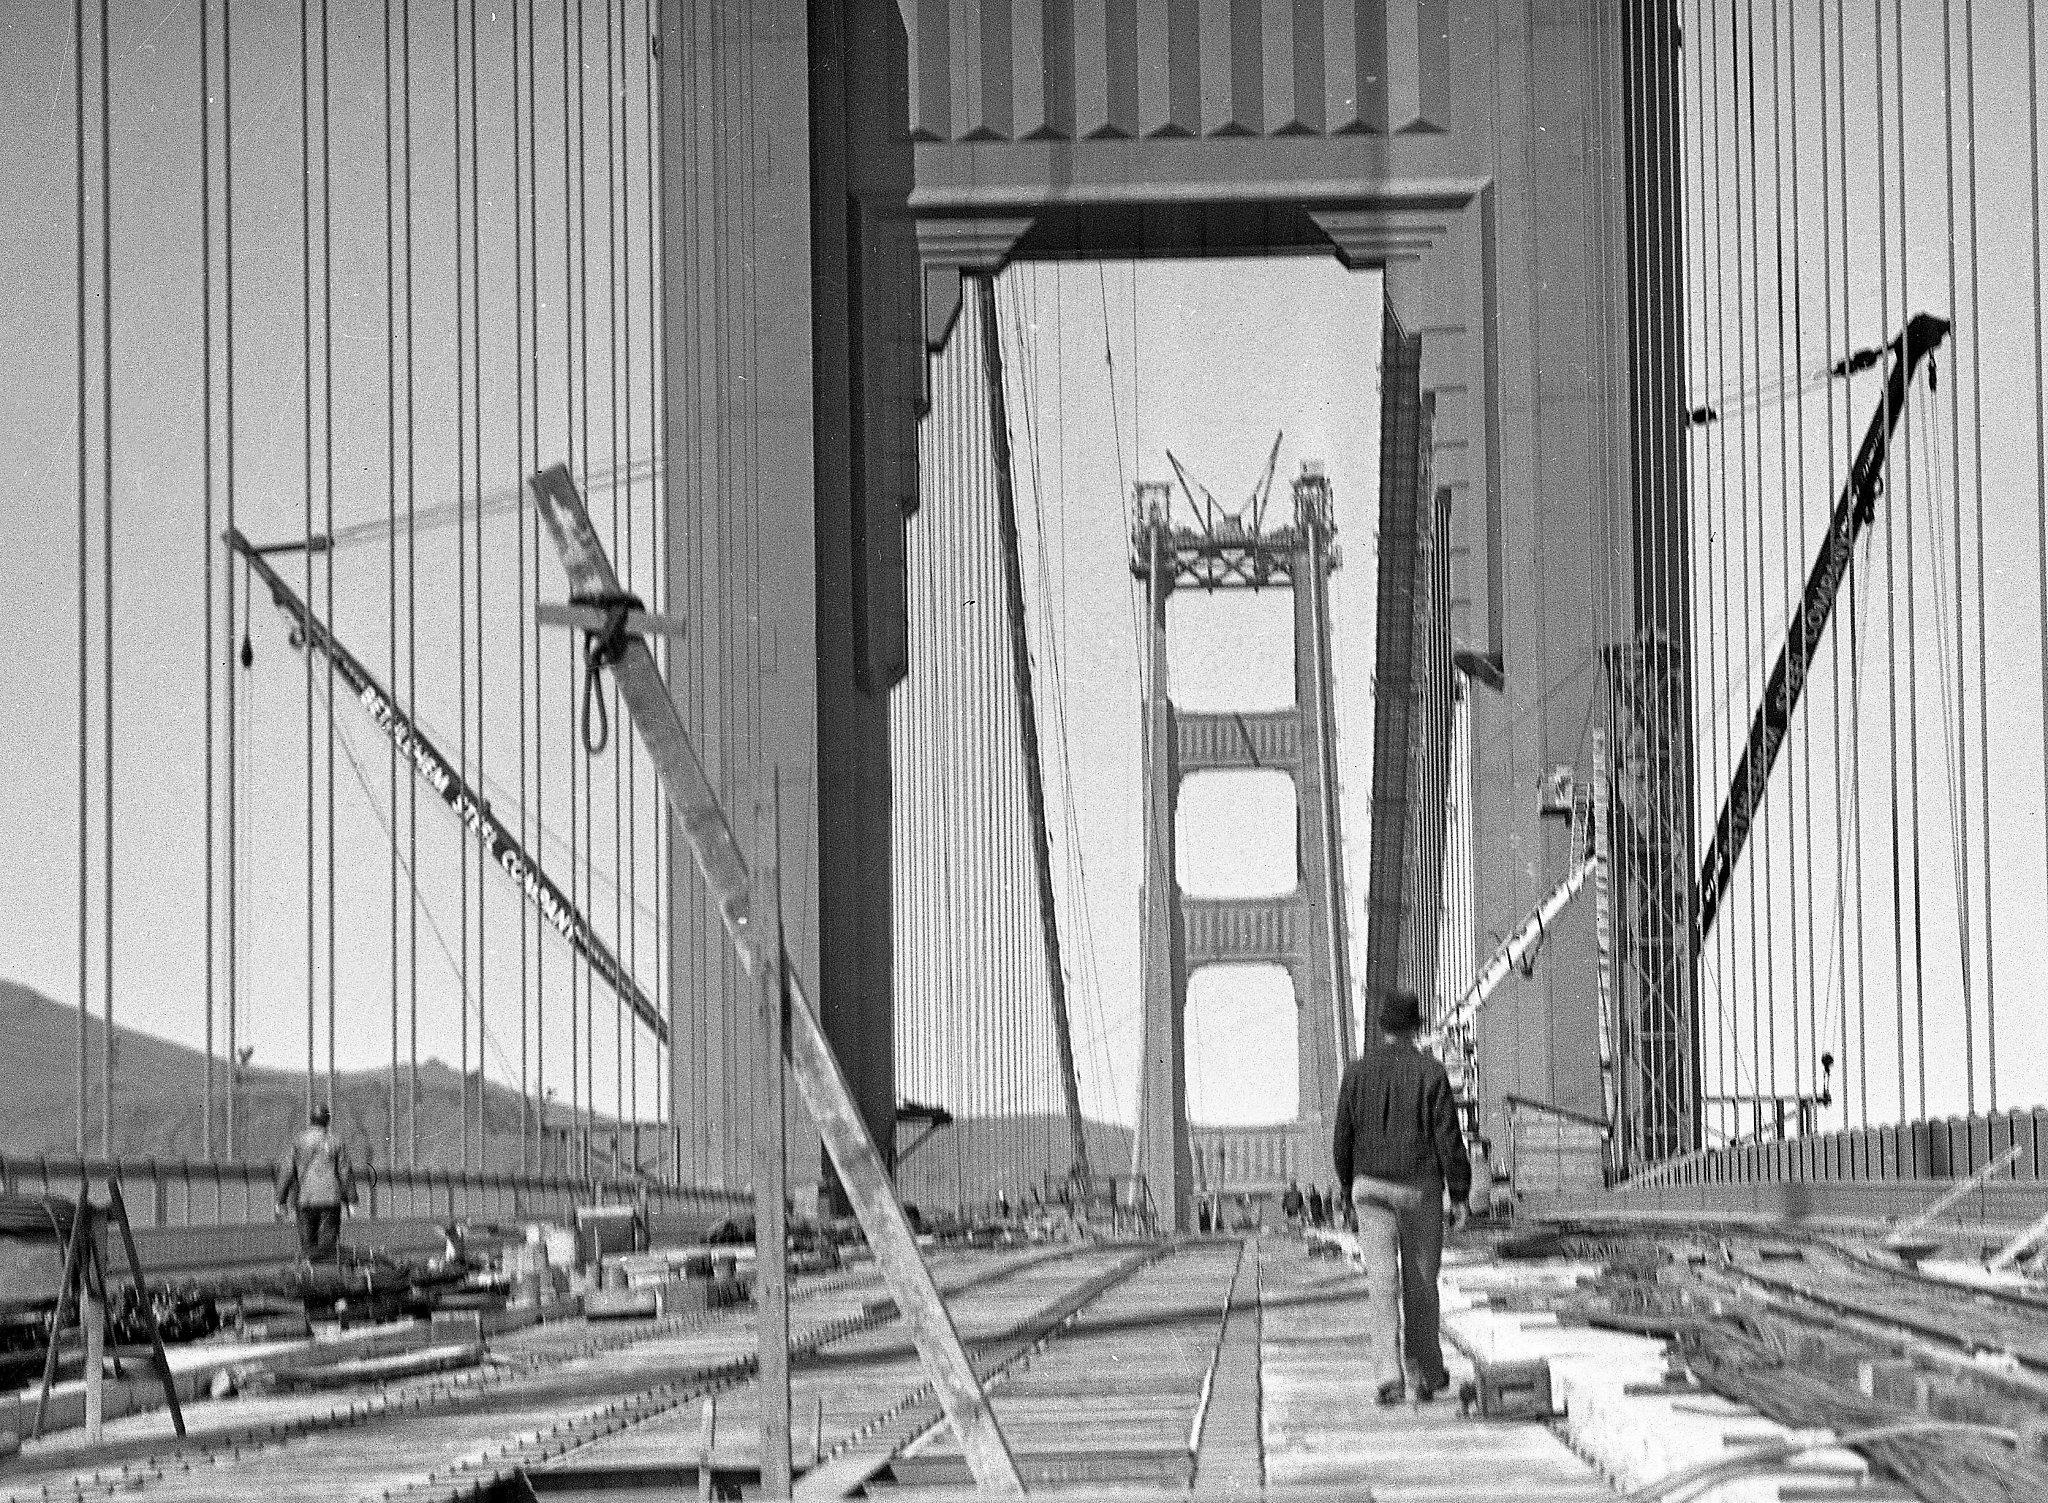 1930s Golden Gate Bridge Construction Photos Rescued From